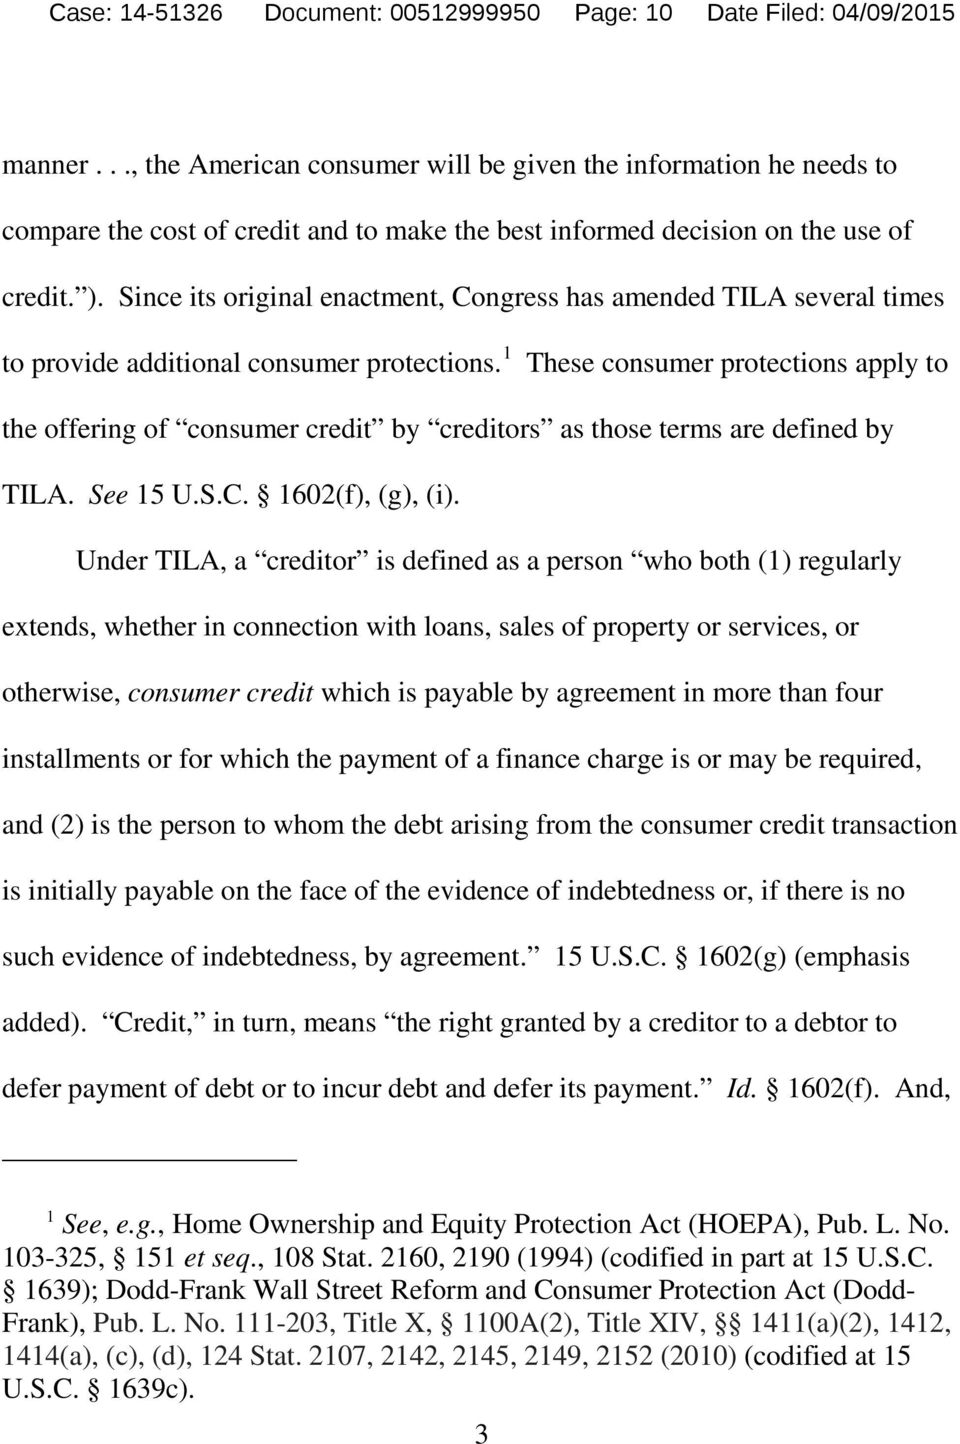 Since its original enactment, Congress has amended TILA several times to provide additional consumer protections.